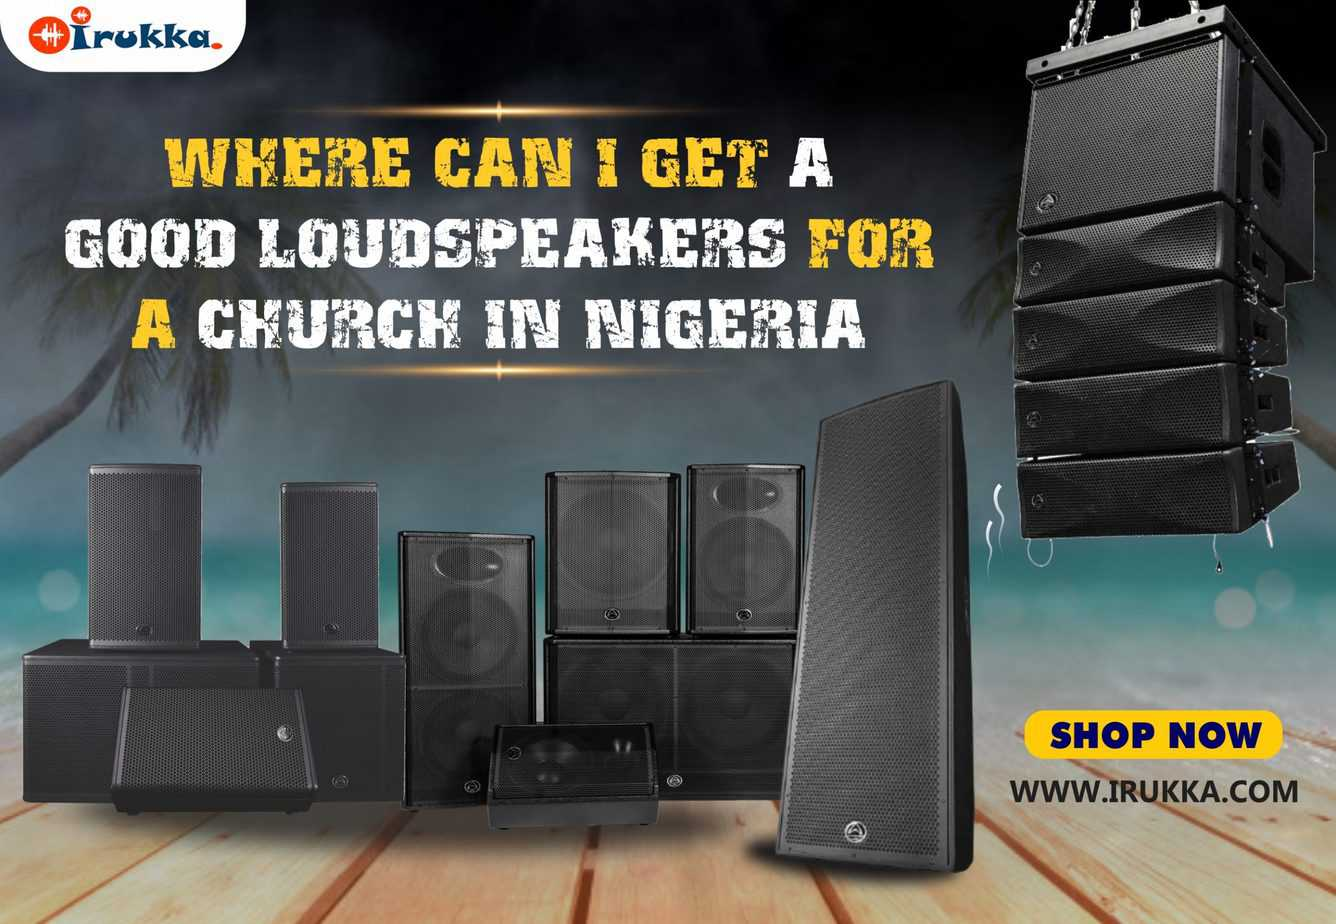 Where Can I Get a Good Loudspeakers for a Church in Nigeria